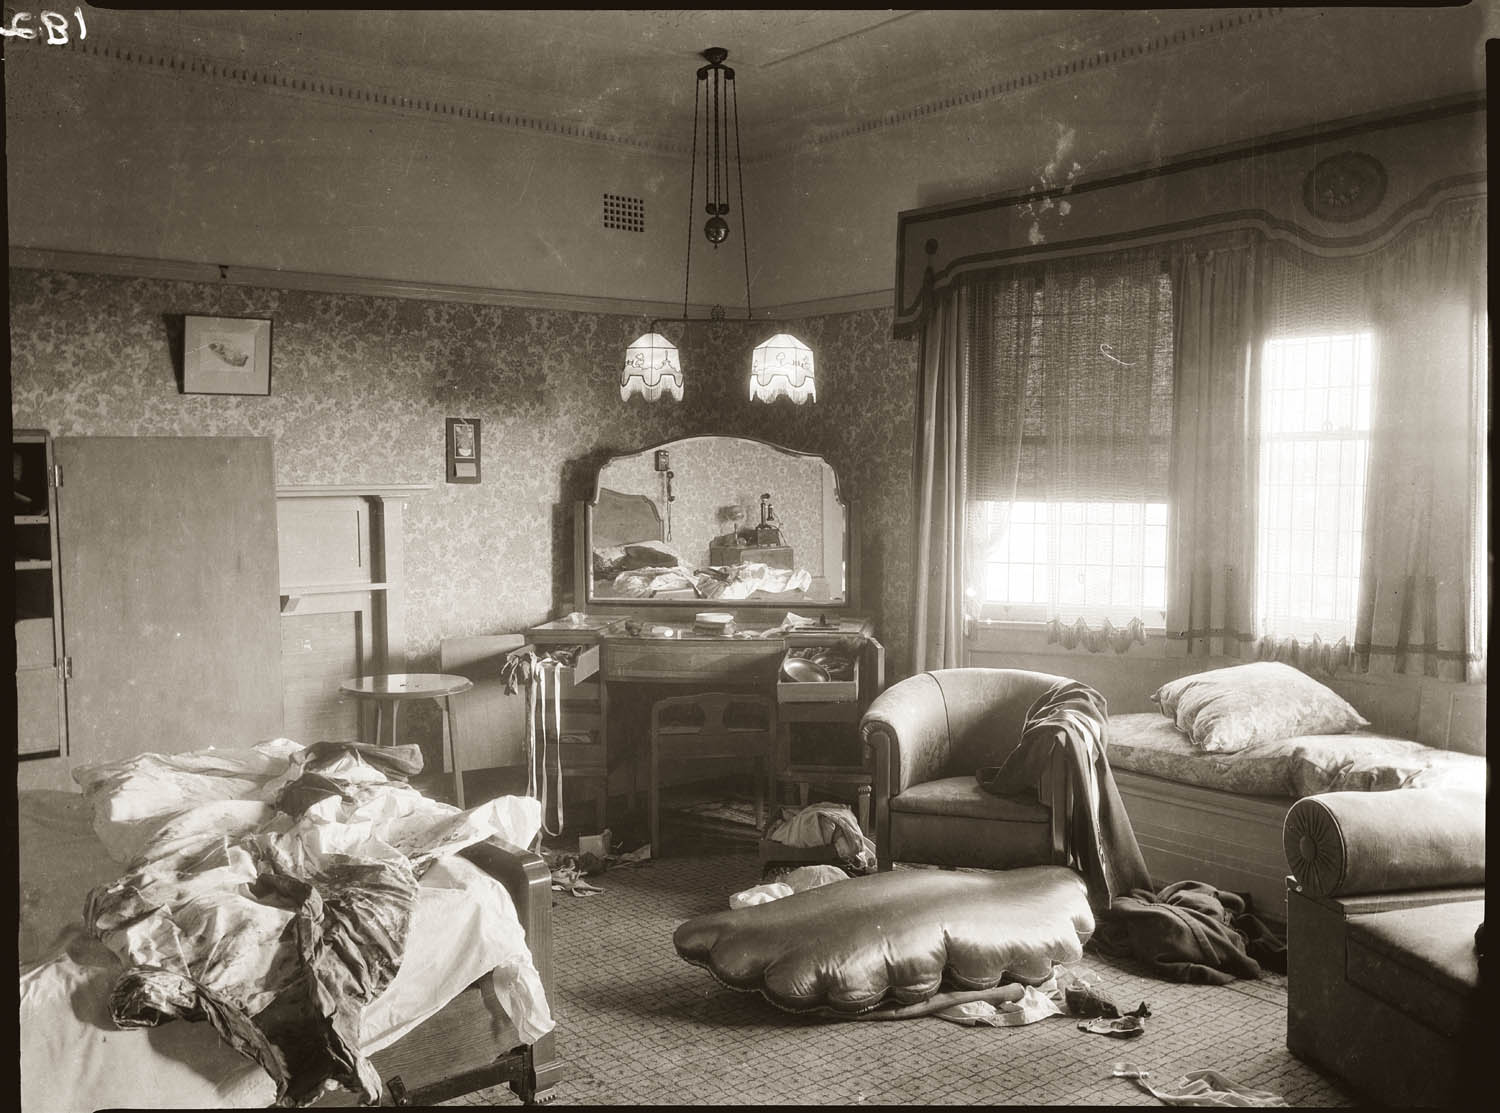 Bedroom, with bloodstained bed reflected in dressing table mirror. Details unknown, late 1930s.